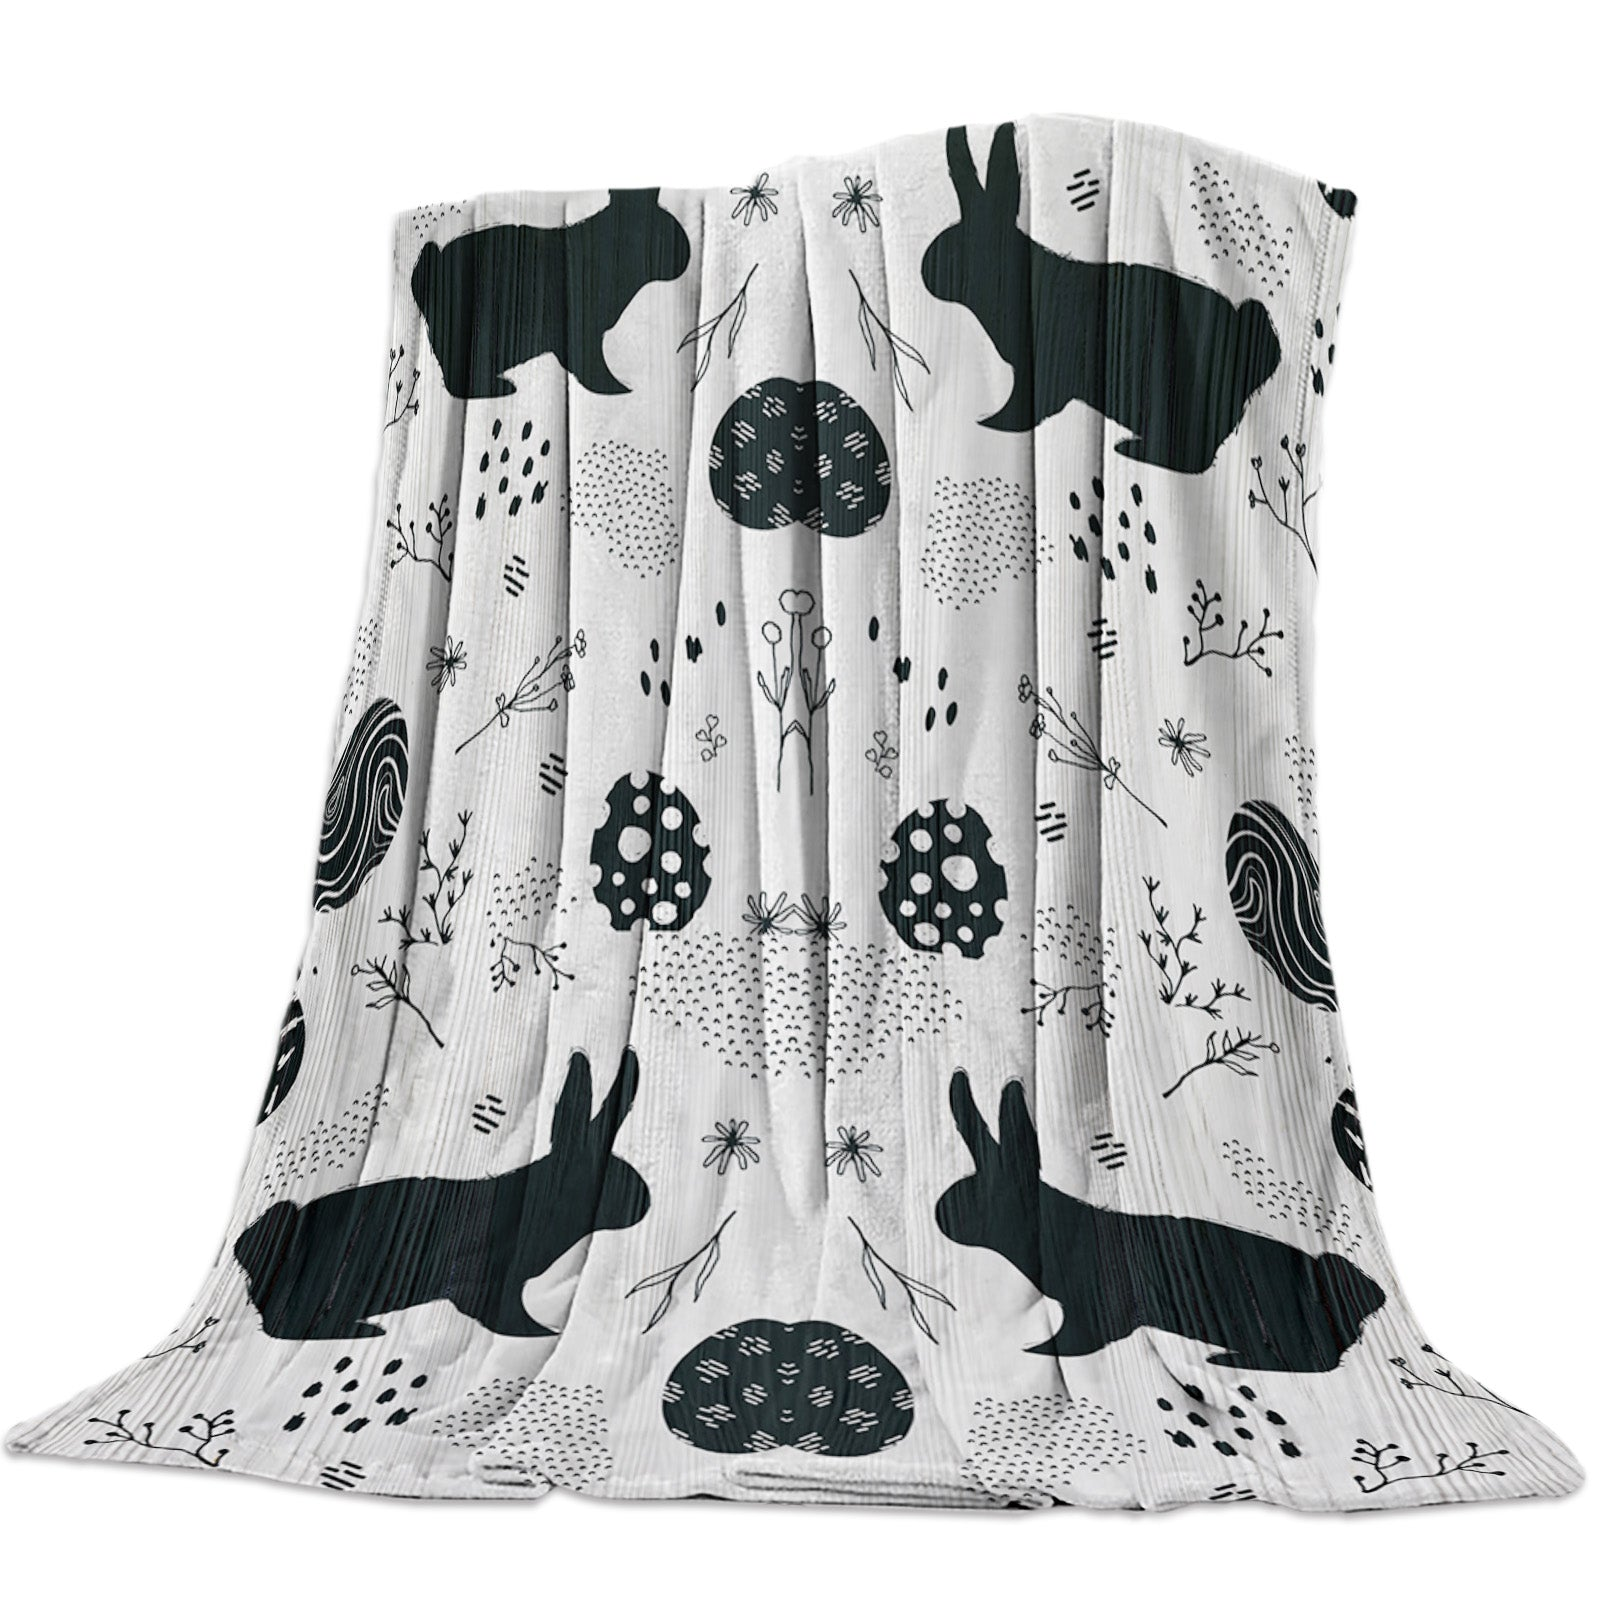 Cute Black and White Bunny and Easter Eggs Throw Blankets